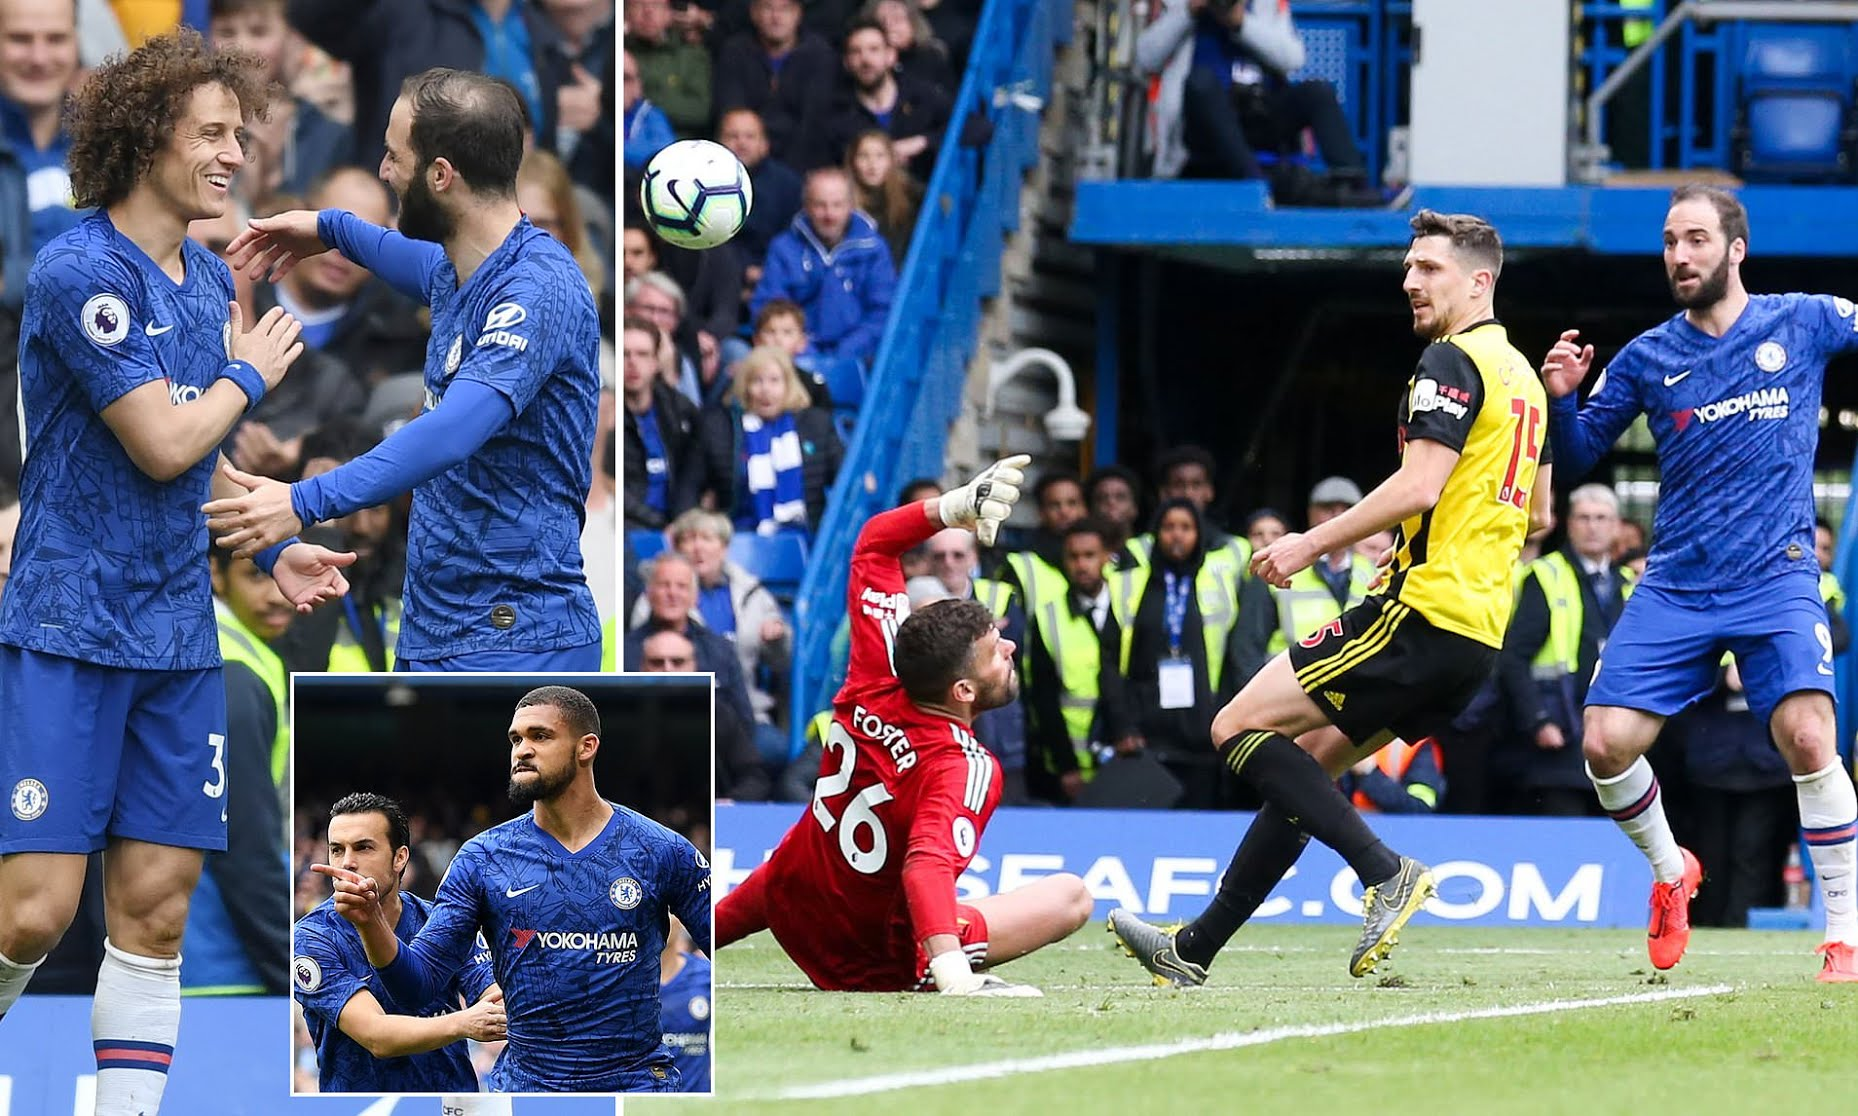 Success Makes 20th Sub Appearance In Watford's Loss To Chelsea